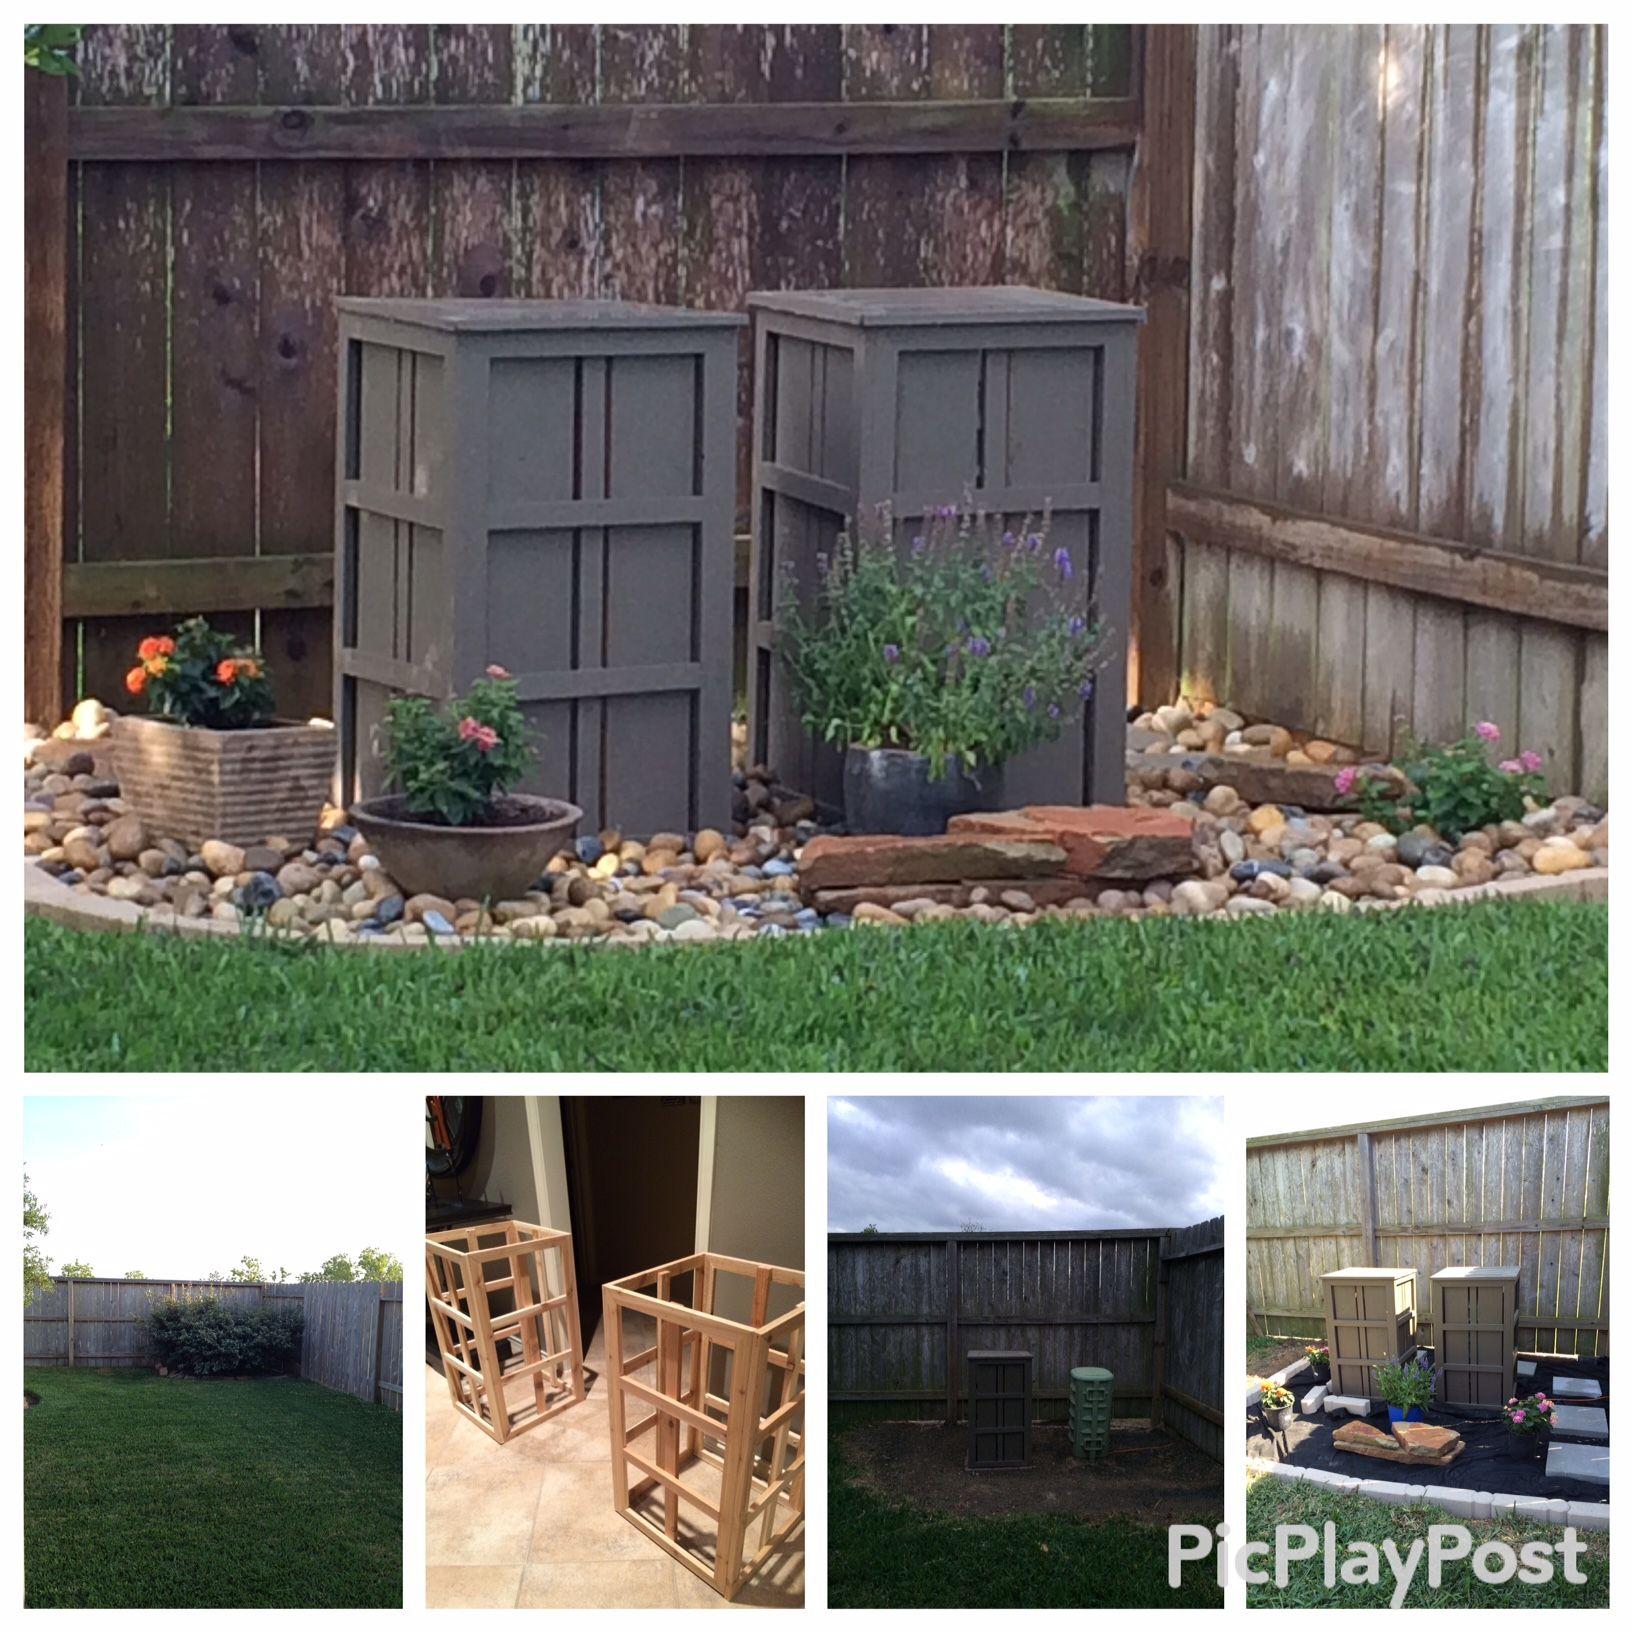 diy cover utility boxes in your yard diy u0026 crafty ideas